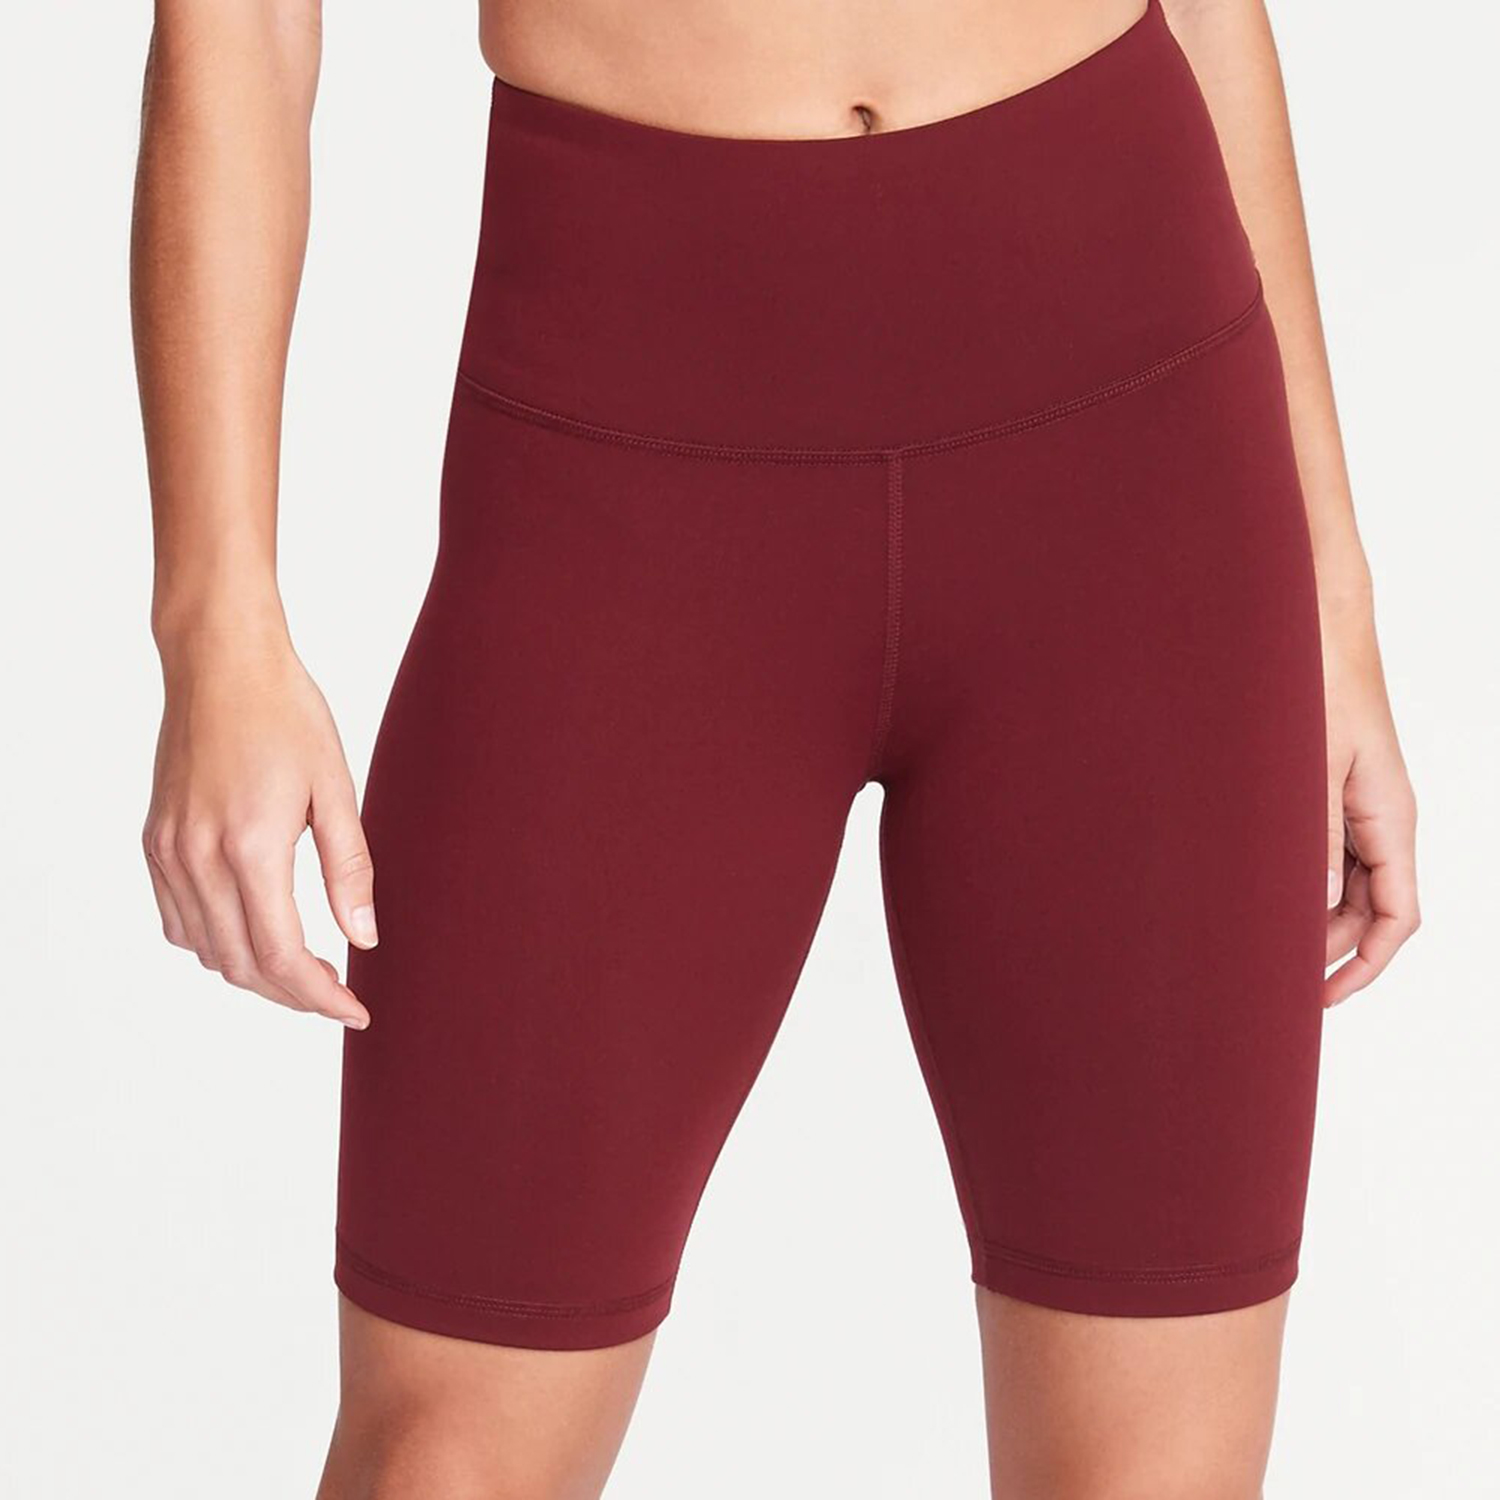 Old Navy High-Waisted Elevate Compression Bermuda Shorts 8-Inch Inseam Maroon Jive